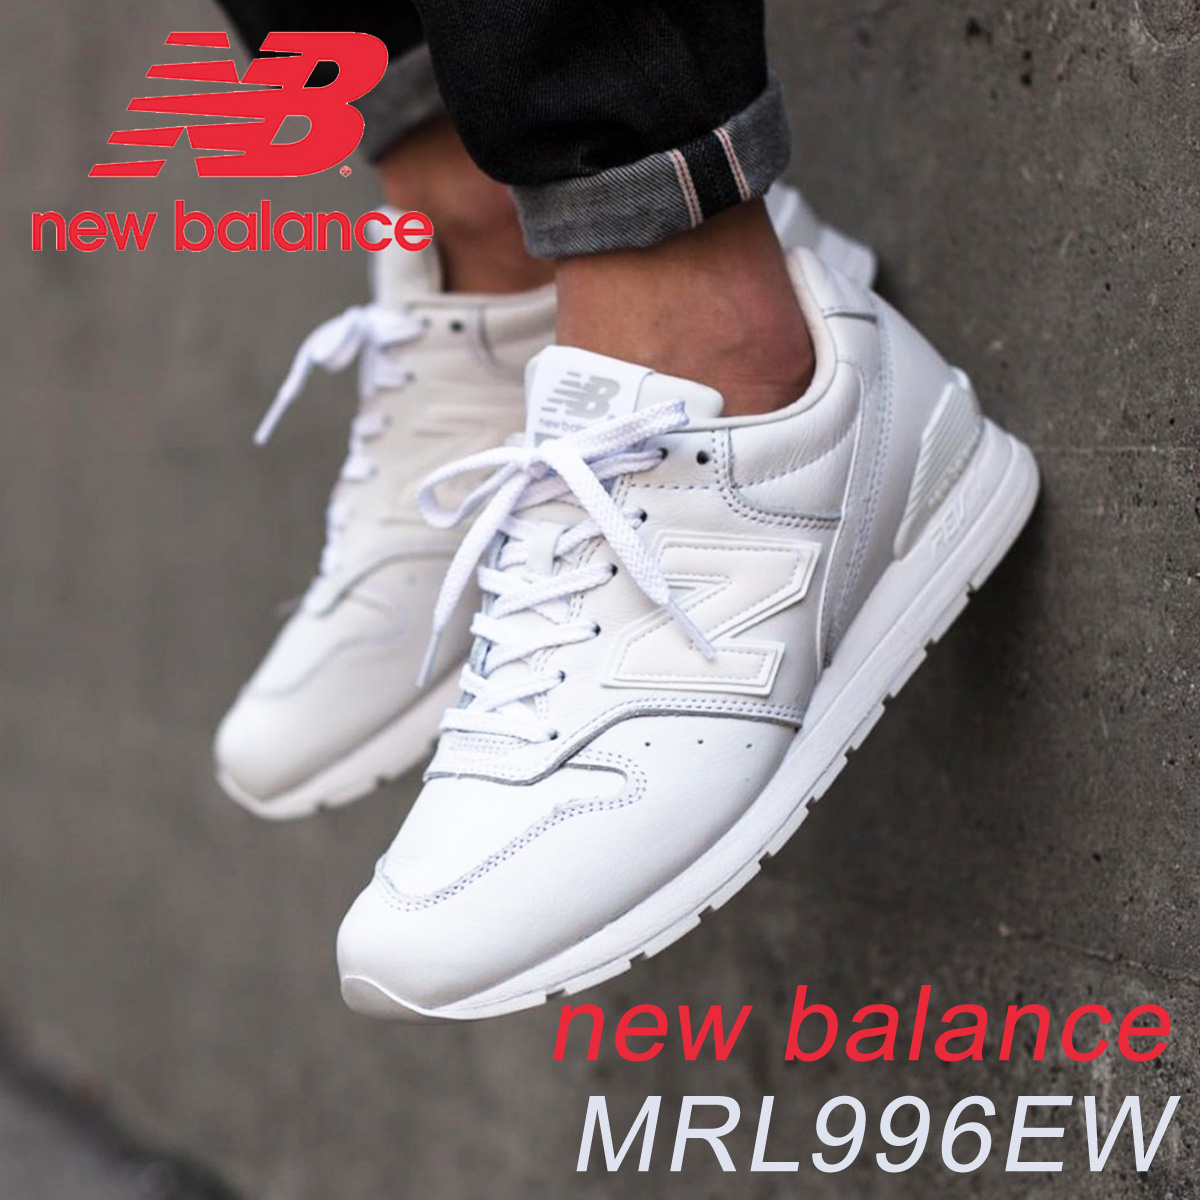 new style 9eca7 6e773 [SOLD OUT]new balance 996 men's lady's New Balance sneakers MRL996EW D Wise  shoes white [4/17 Shinnyu load] [174]